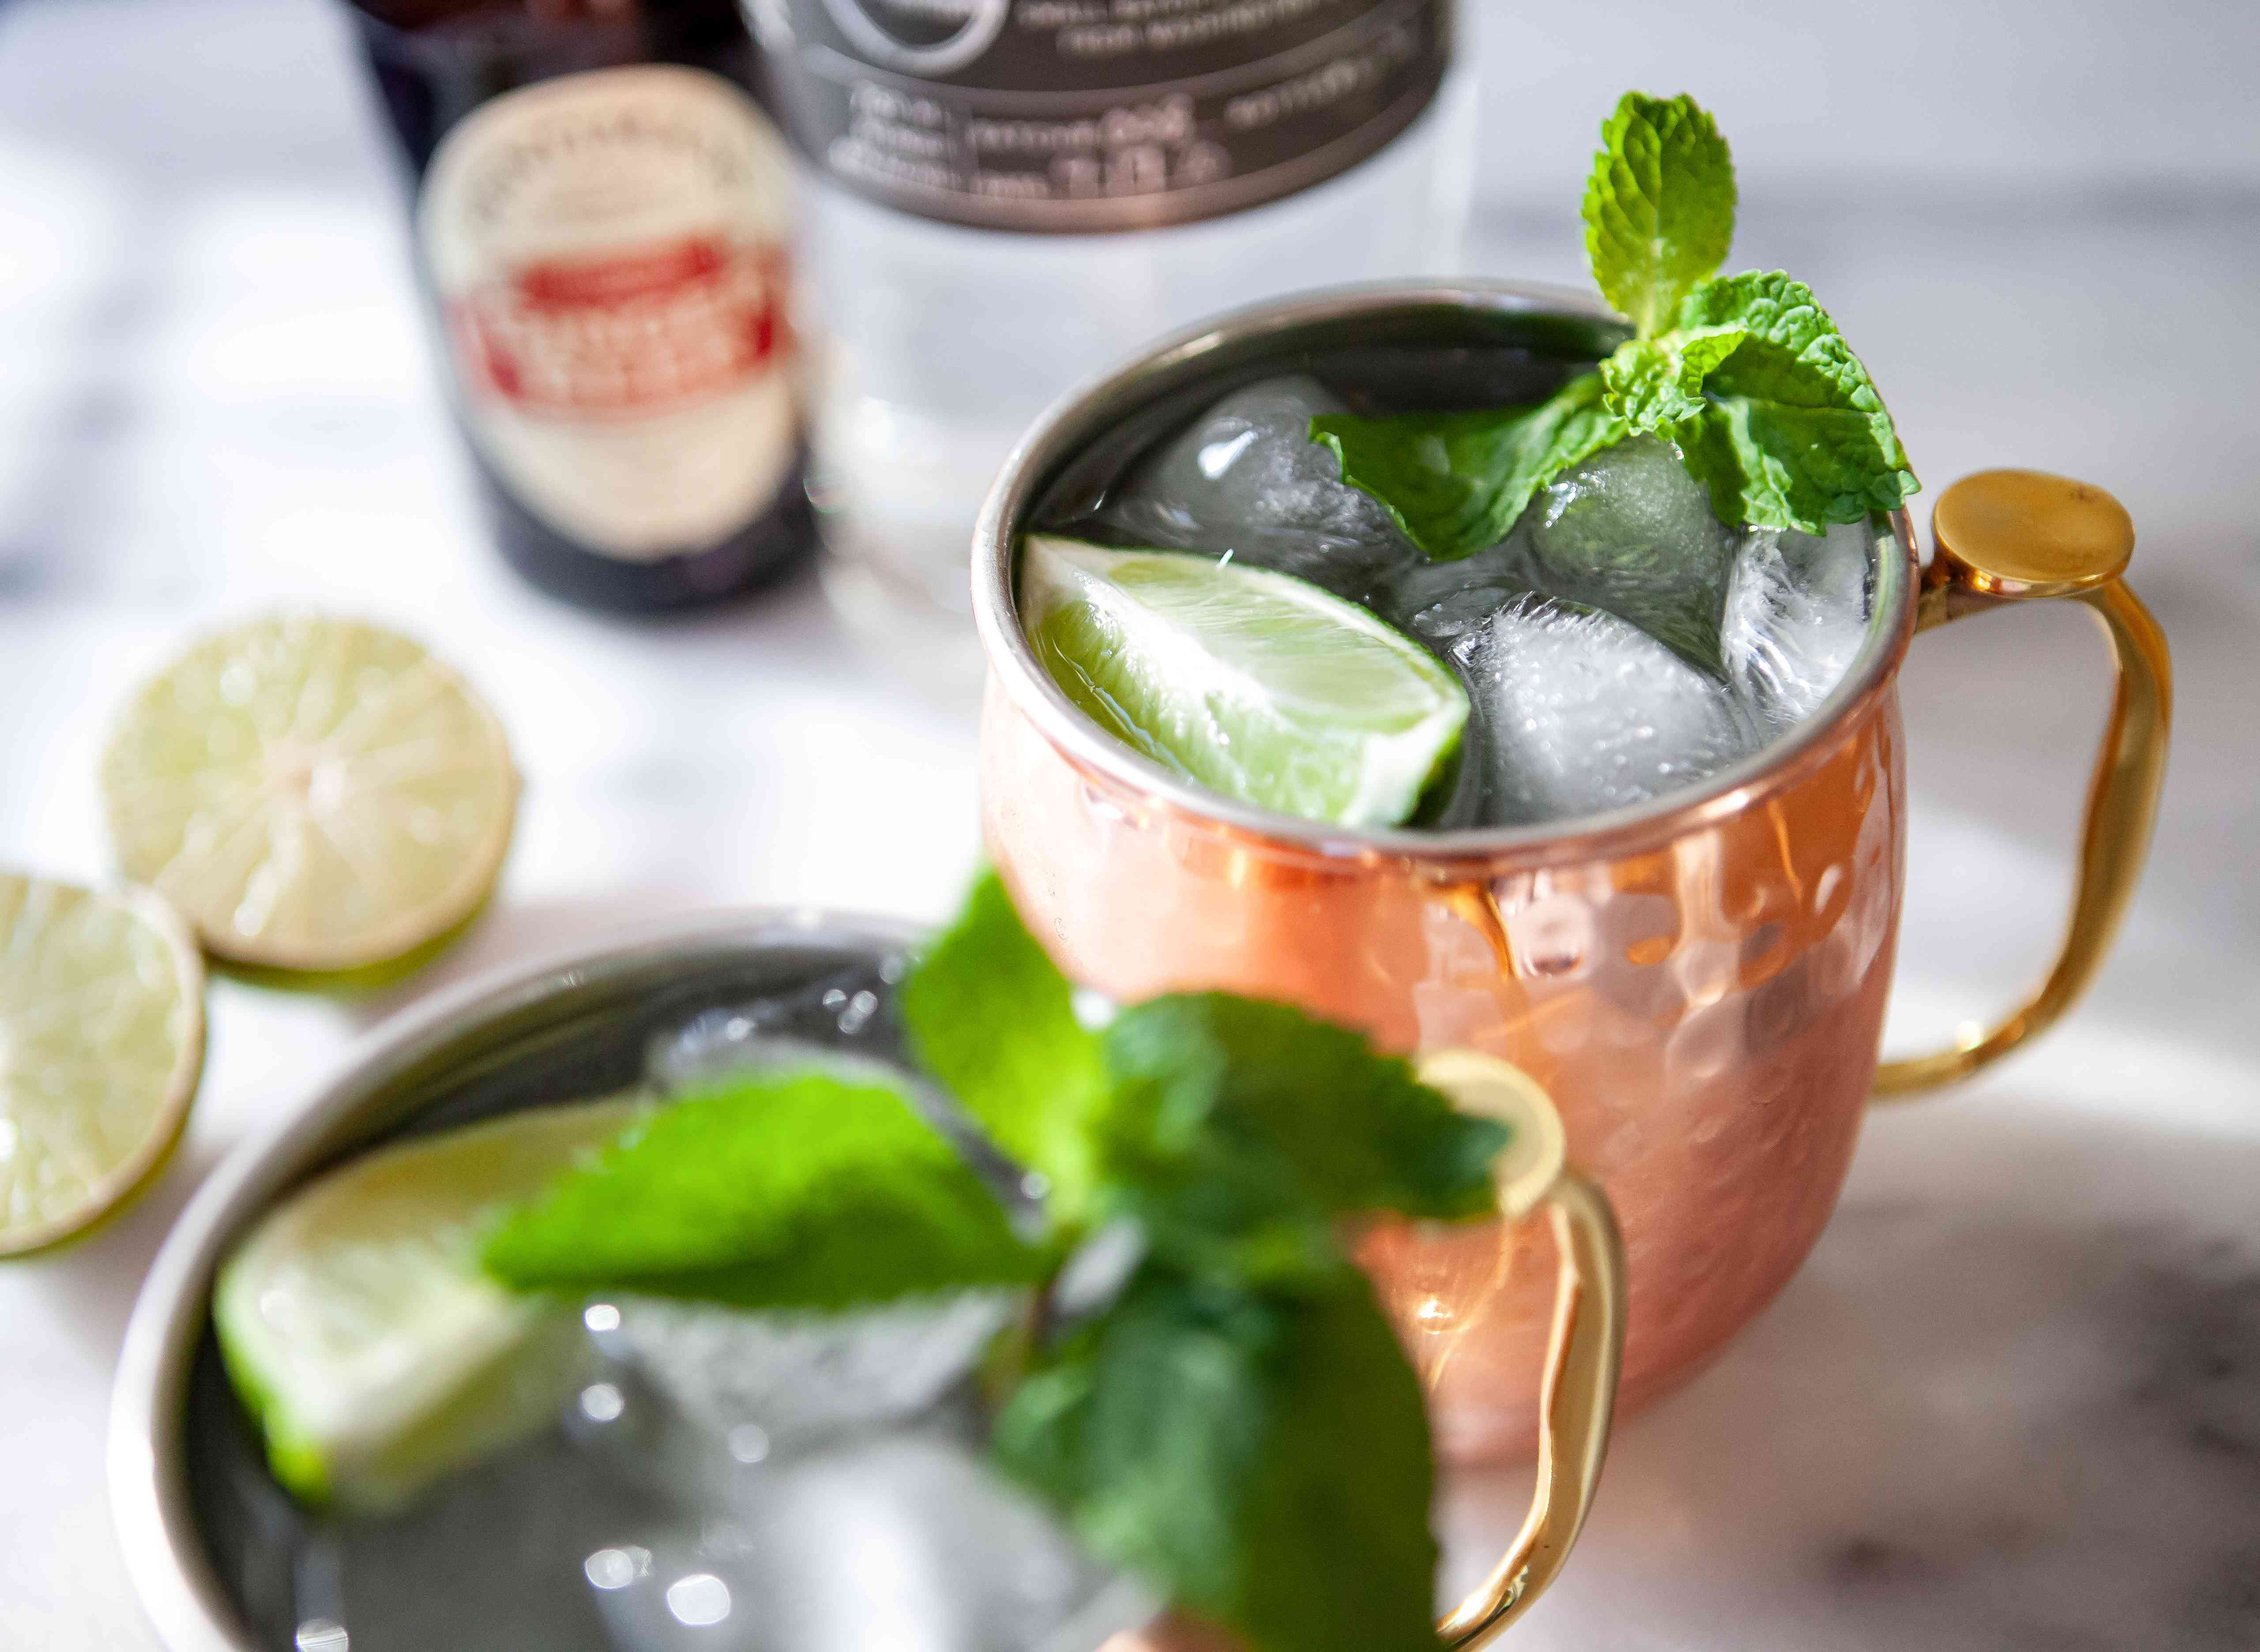 Copper cups with Moscow Mule Cocktails garnished with mint springs and lime wedges.